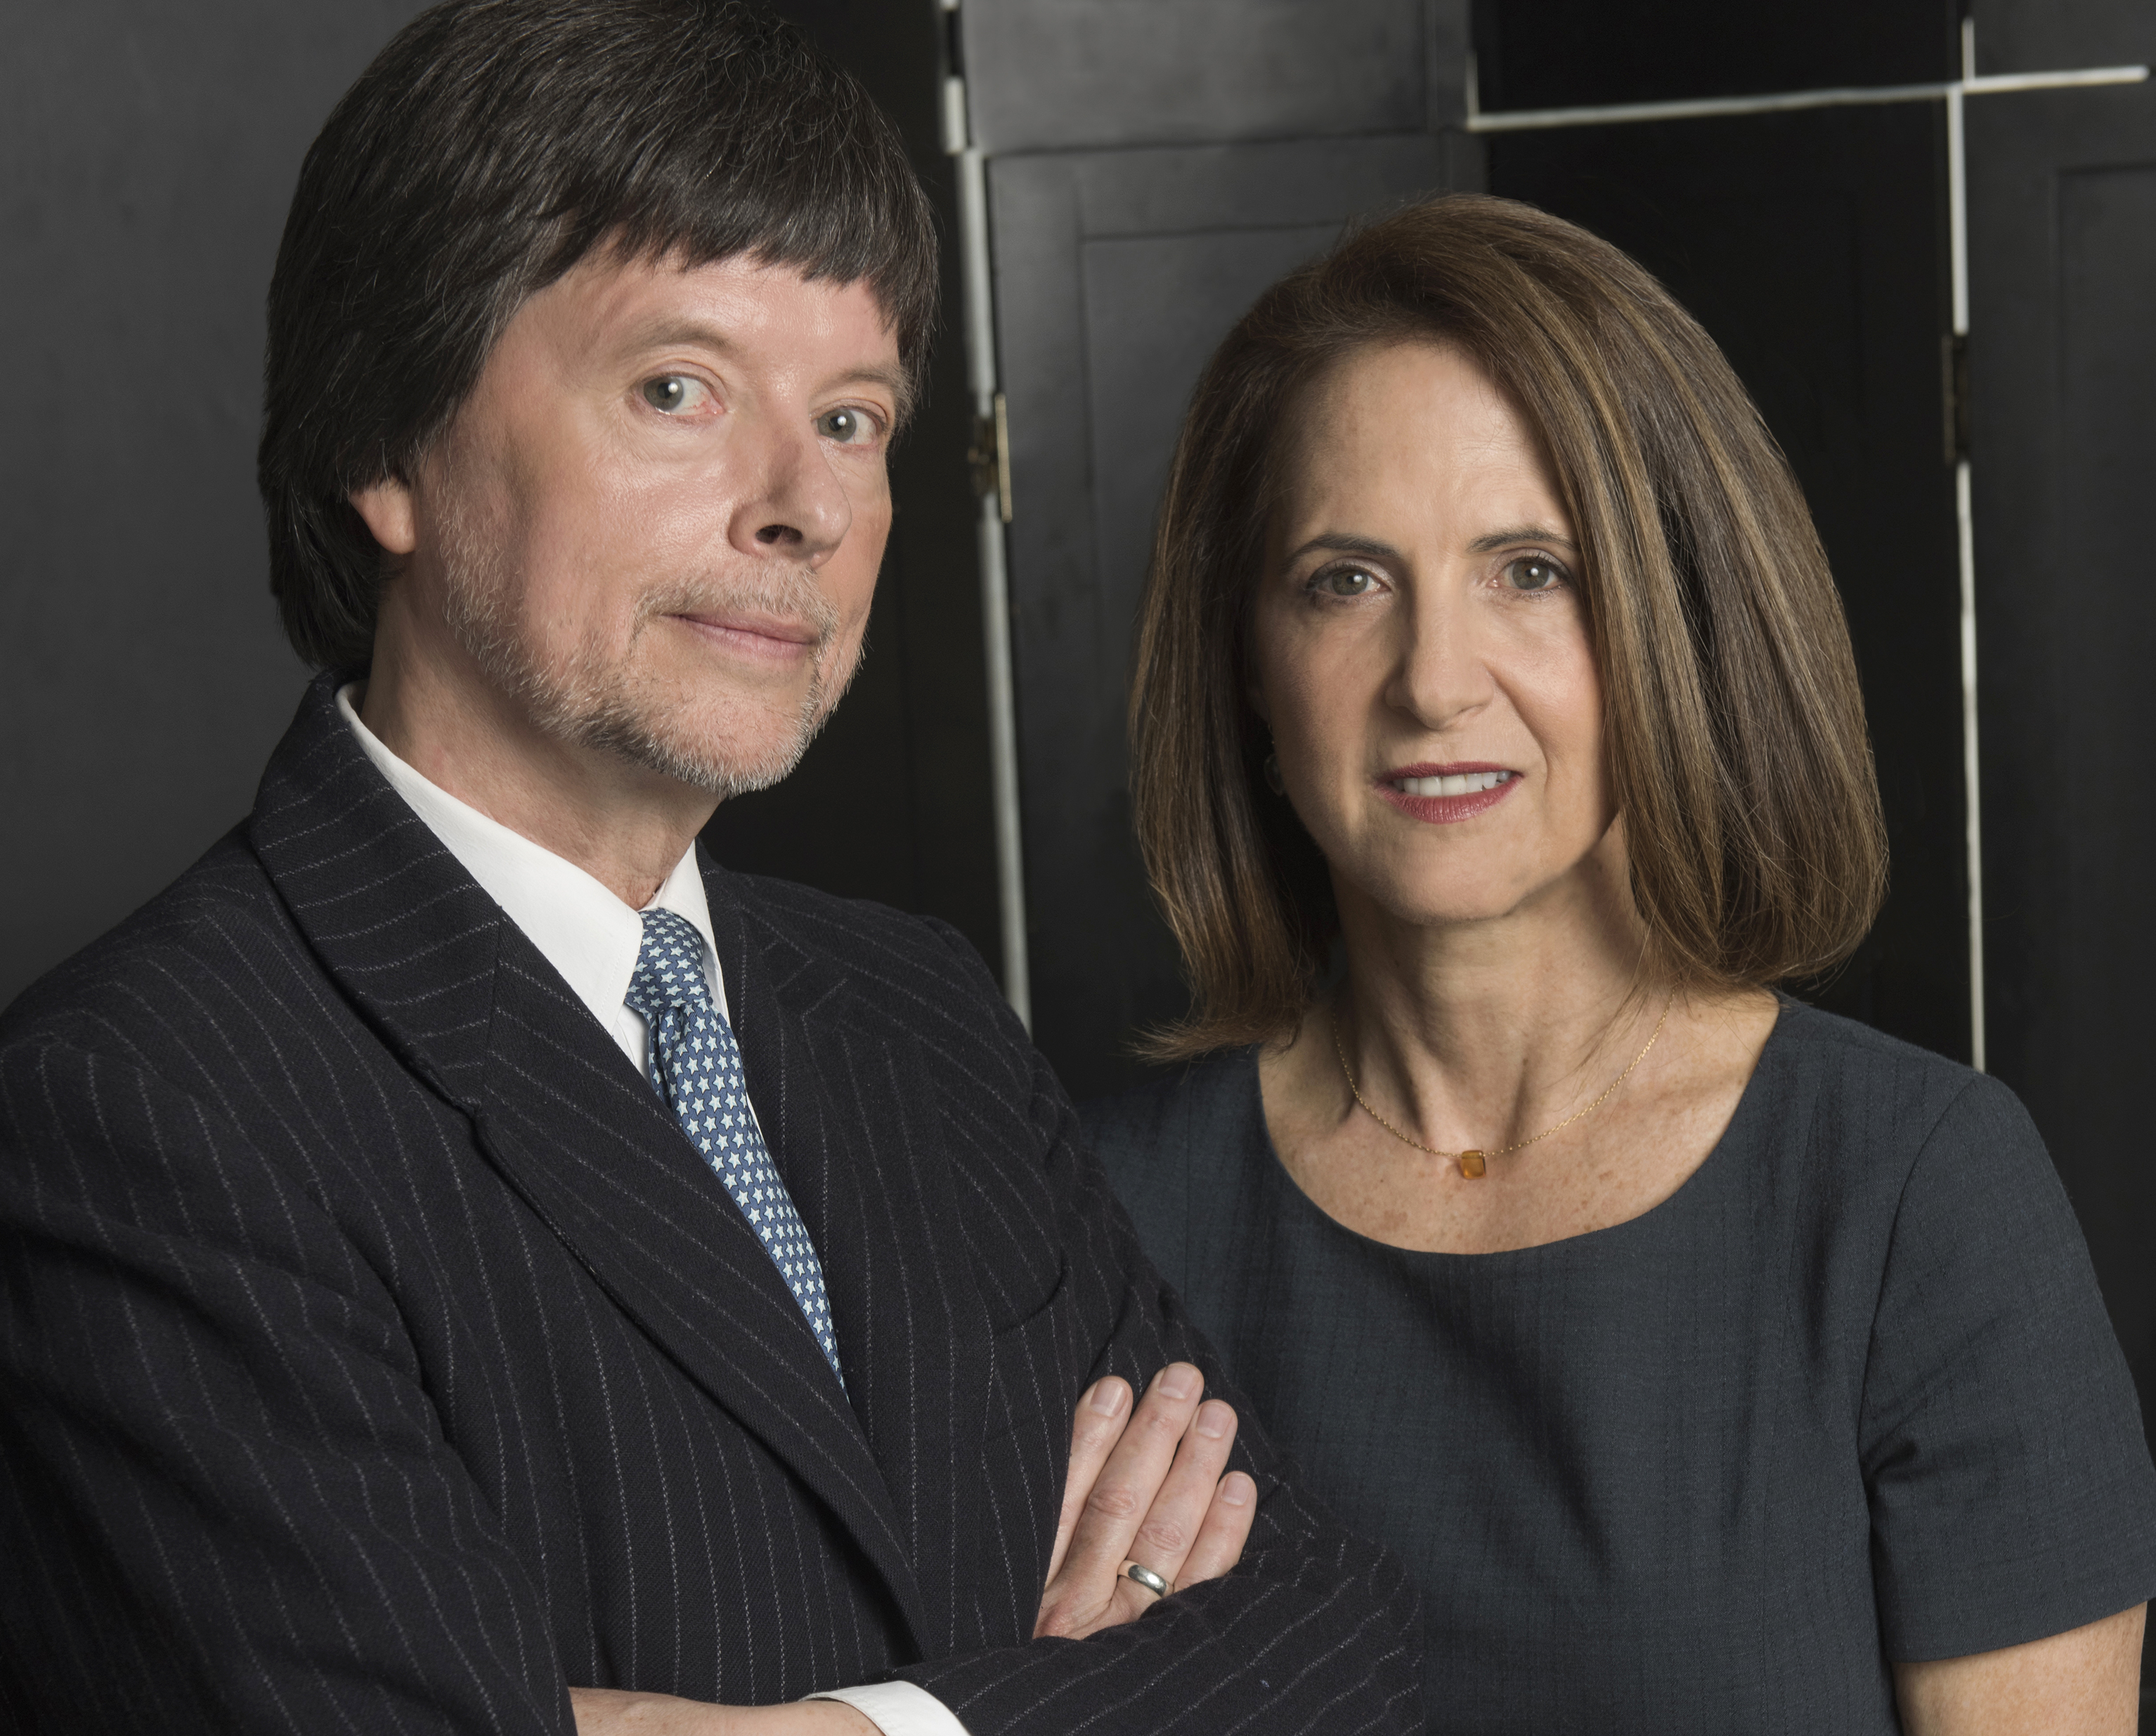 Portraits of filmmakers Ken Burns, Lynn Novick and Sarah Botstein taken on May 3, 2017.Credit: Stephanie Berger